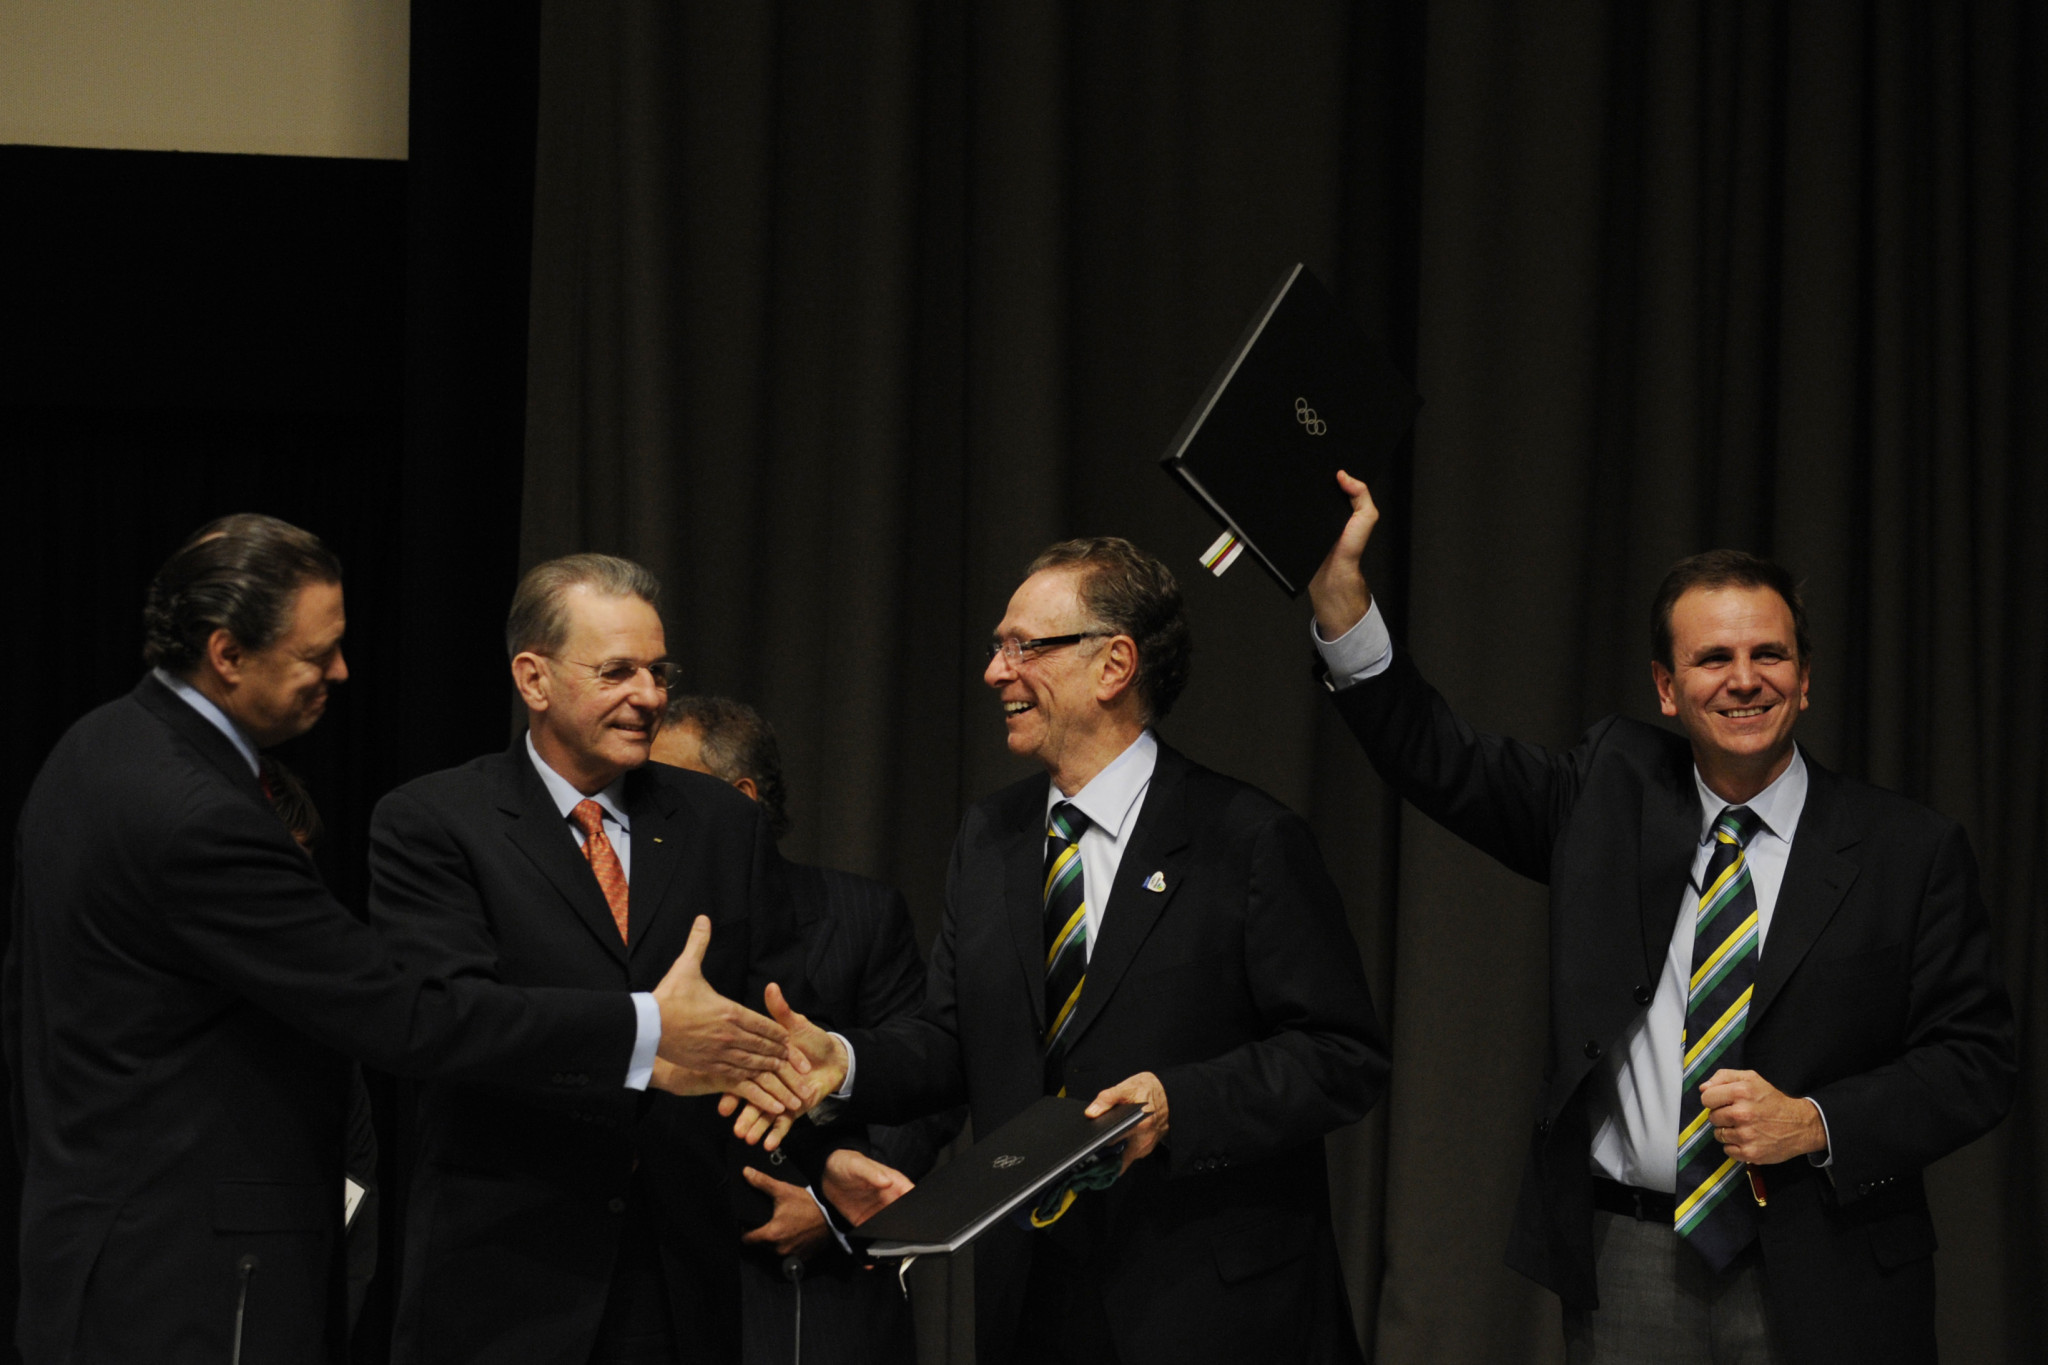 Carlos Nuzman, centre, pictured celebrating with former IOC President Jacques Rogge after Rio de Janeiro was awarded the Olympic and Paralympics at Copenhagen in 2009 ©Getty Images